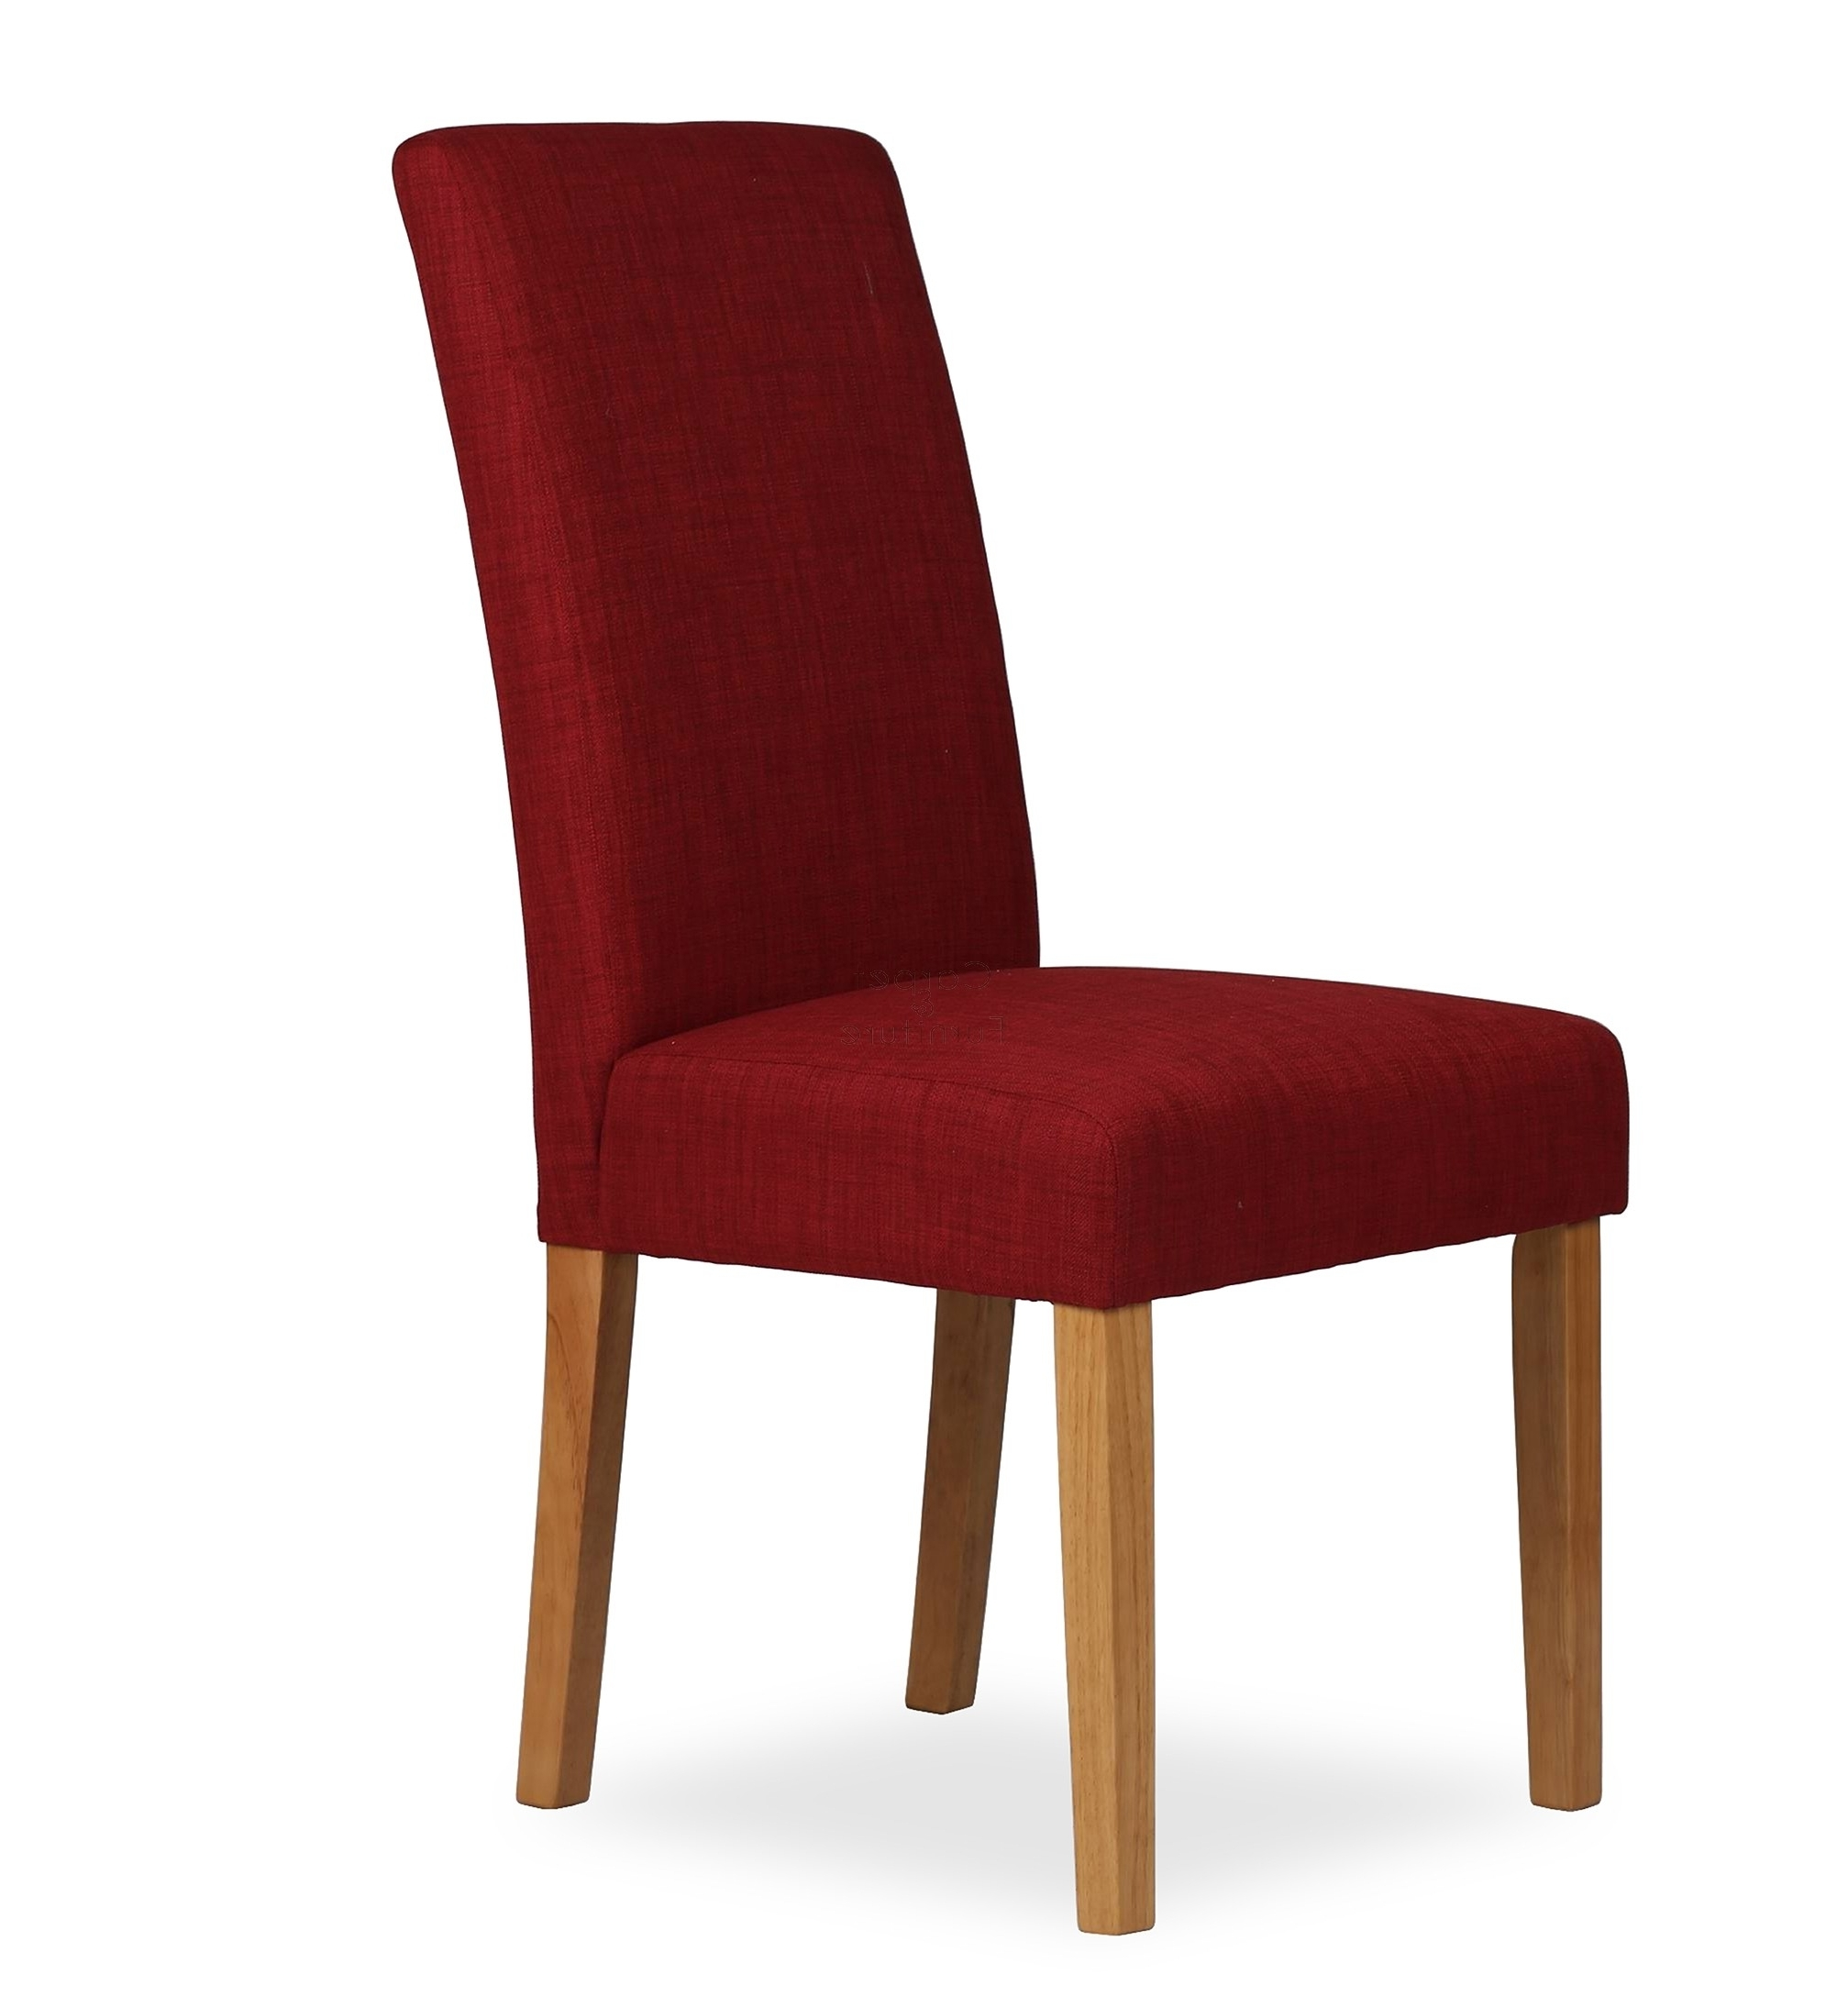 Red Dining Chairs For Best And Newest Upholstered Dining Chair – Claret Red (View 17 of 25)